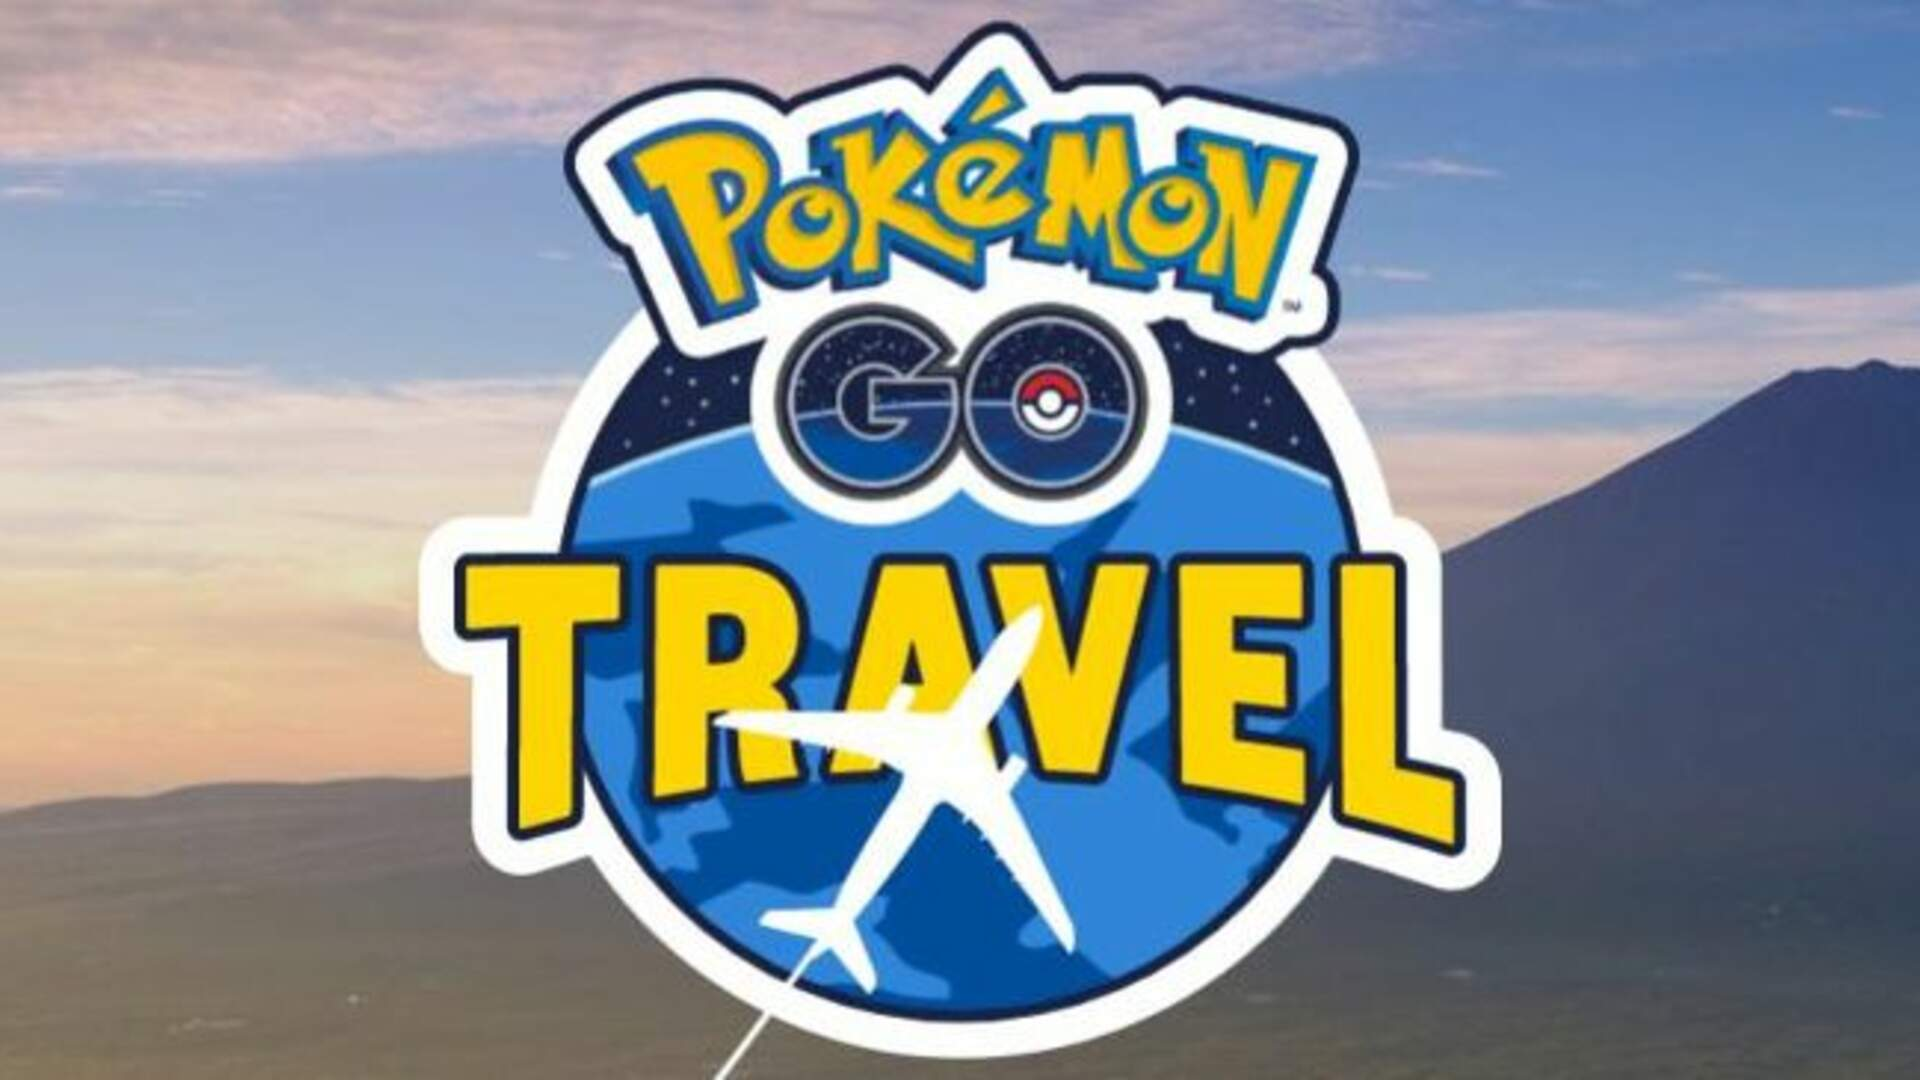 Pokemon GO Global Catch Challenge Guide - Start/End Dates, Global Catch Challenge Rewards, Pokemon GO Travel  - Everything we Know